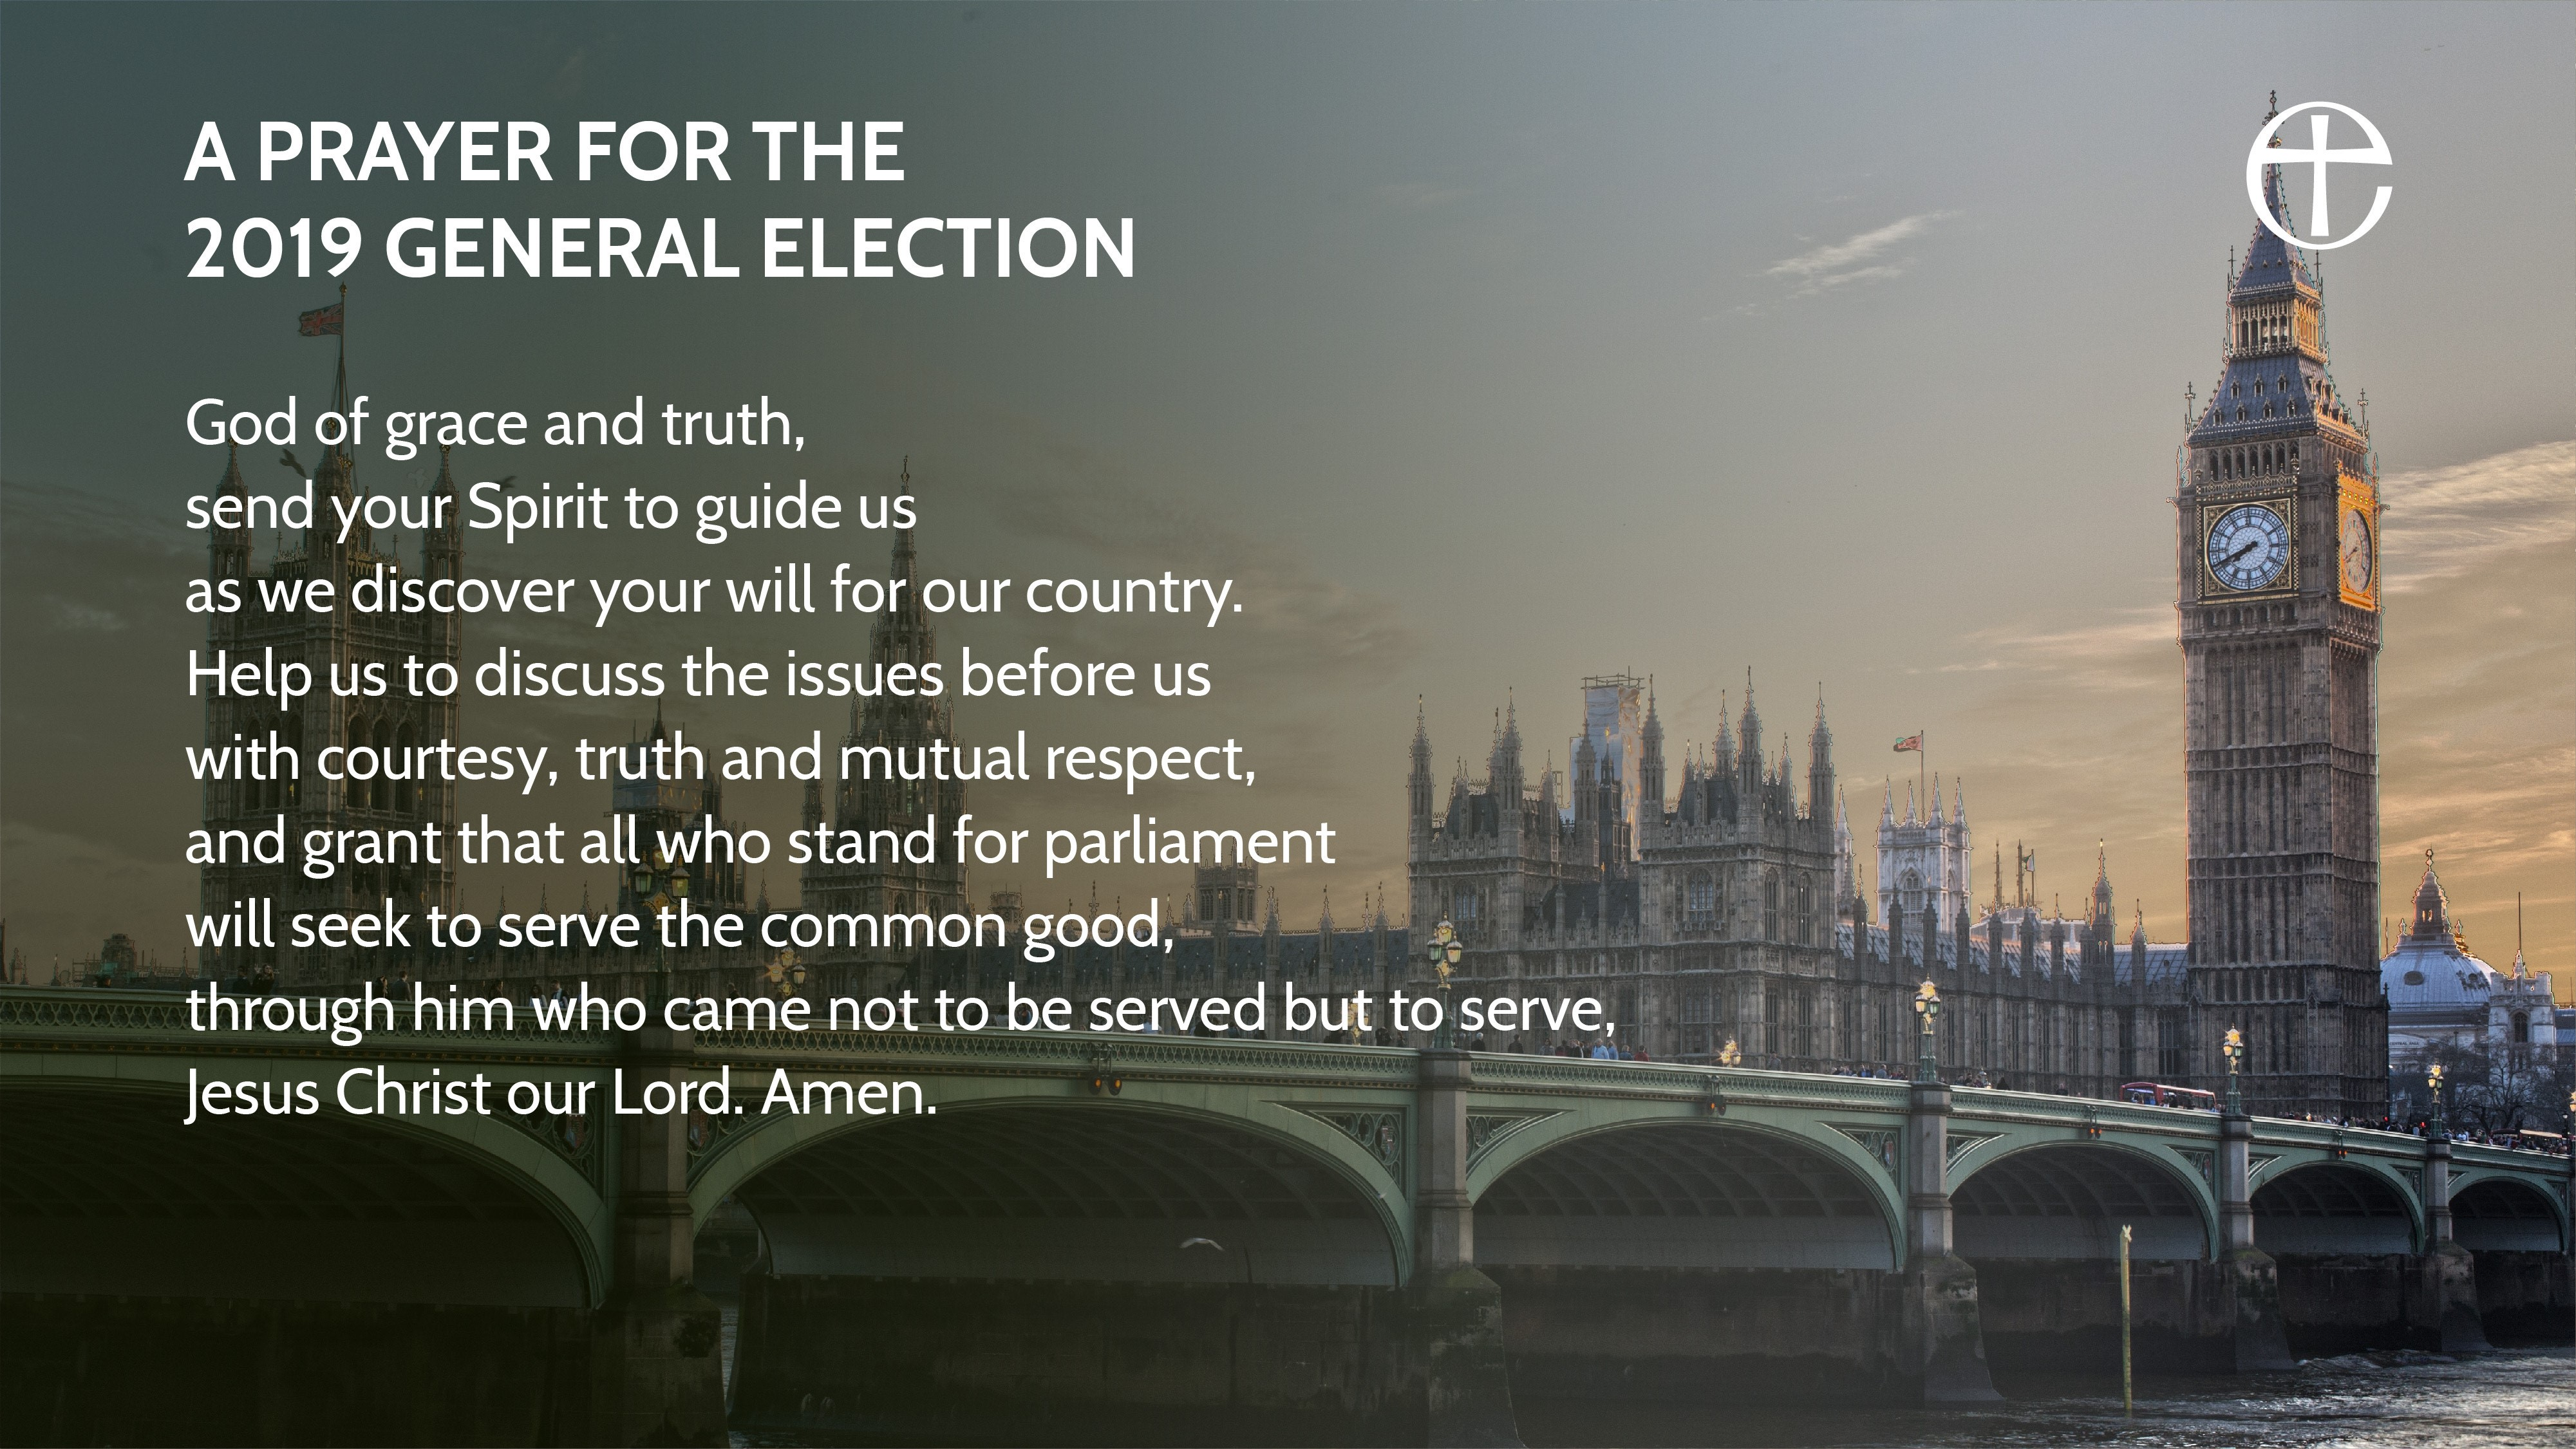 A prayer for the 2019 General Election #GE2019